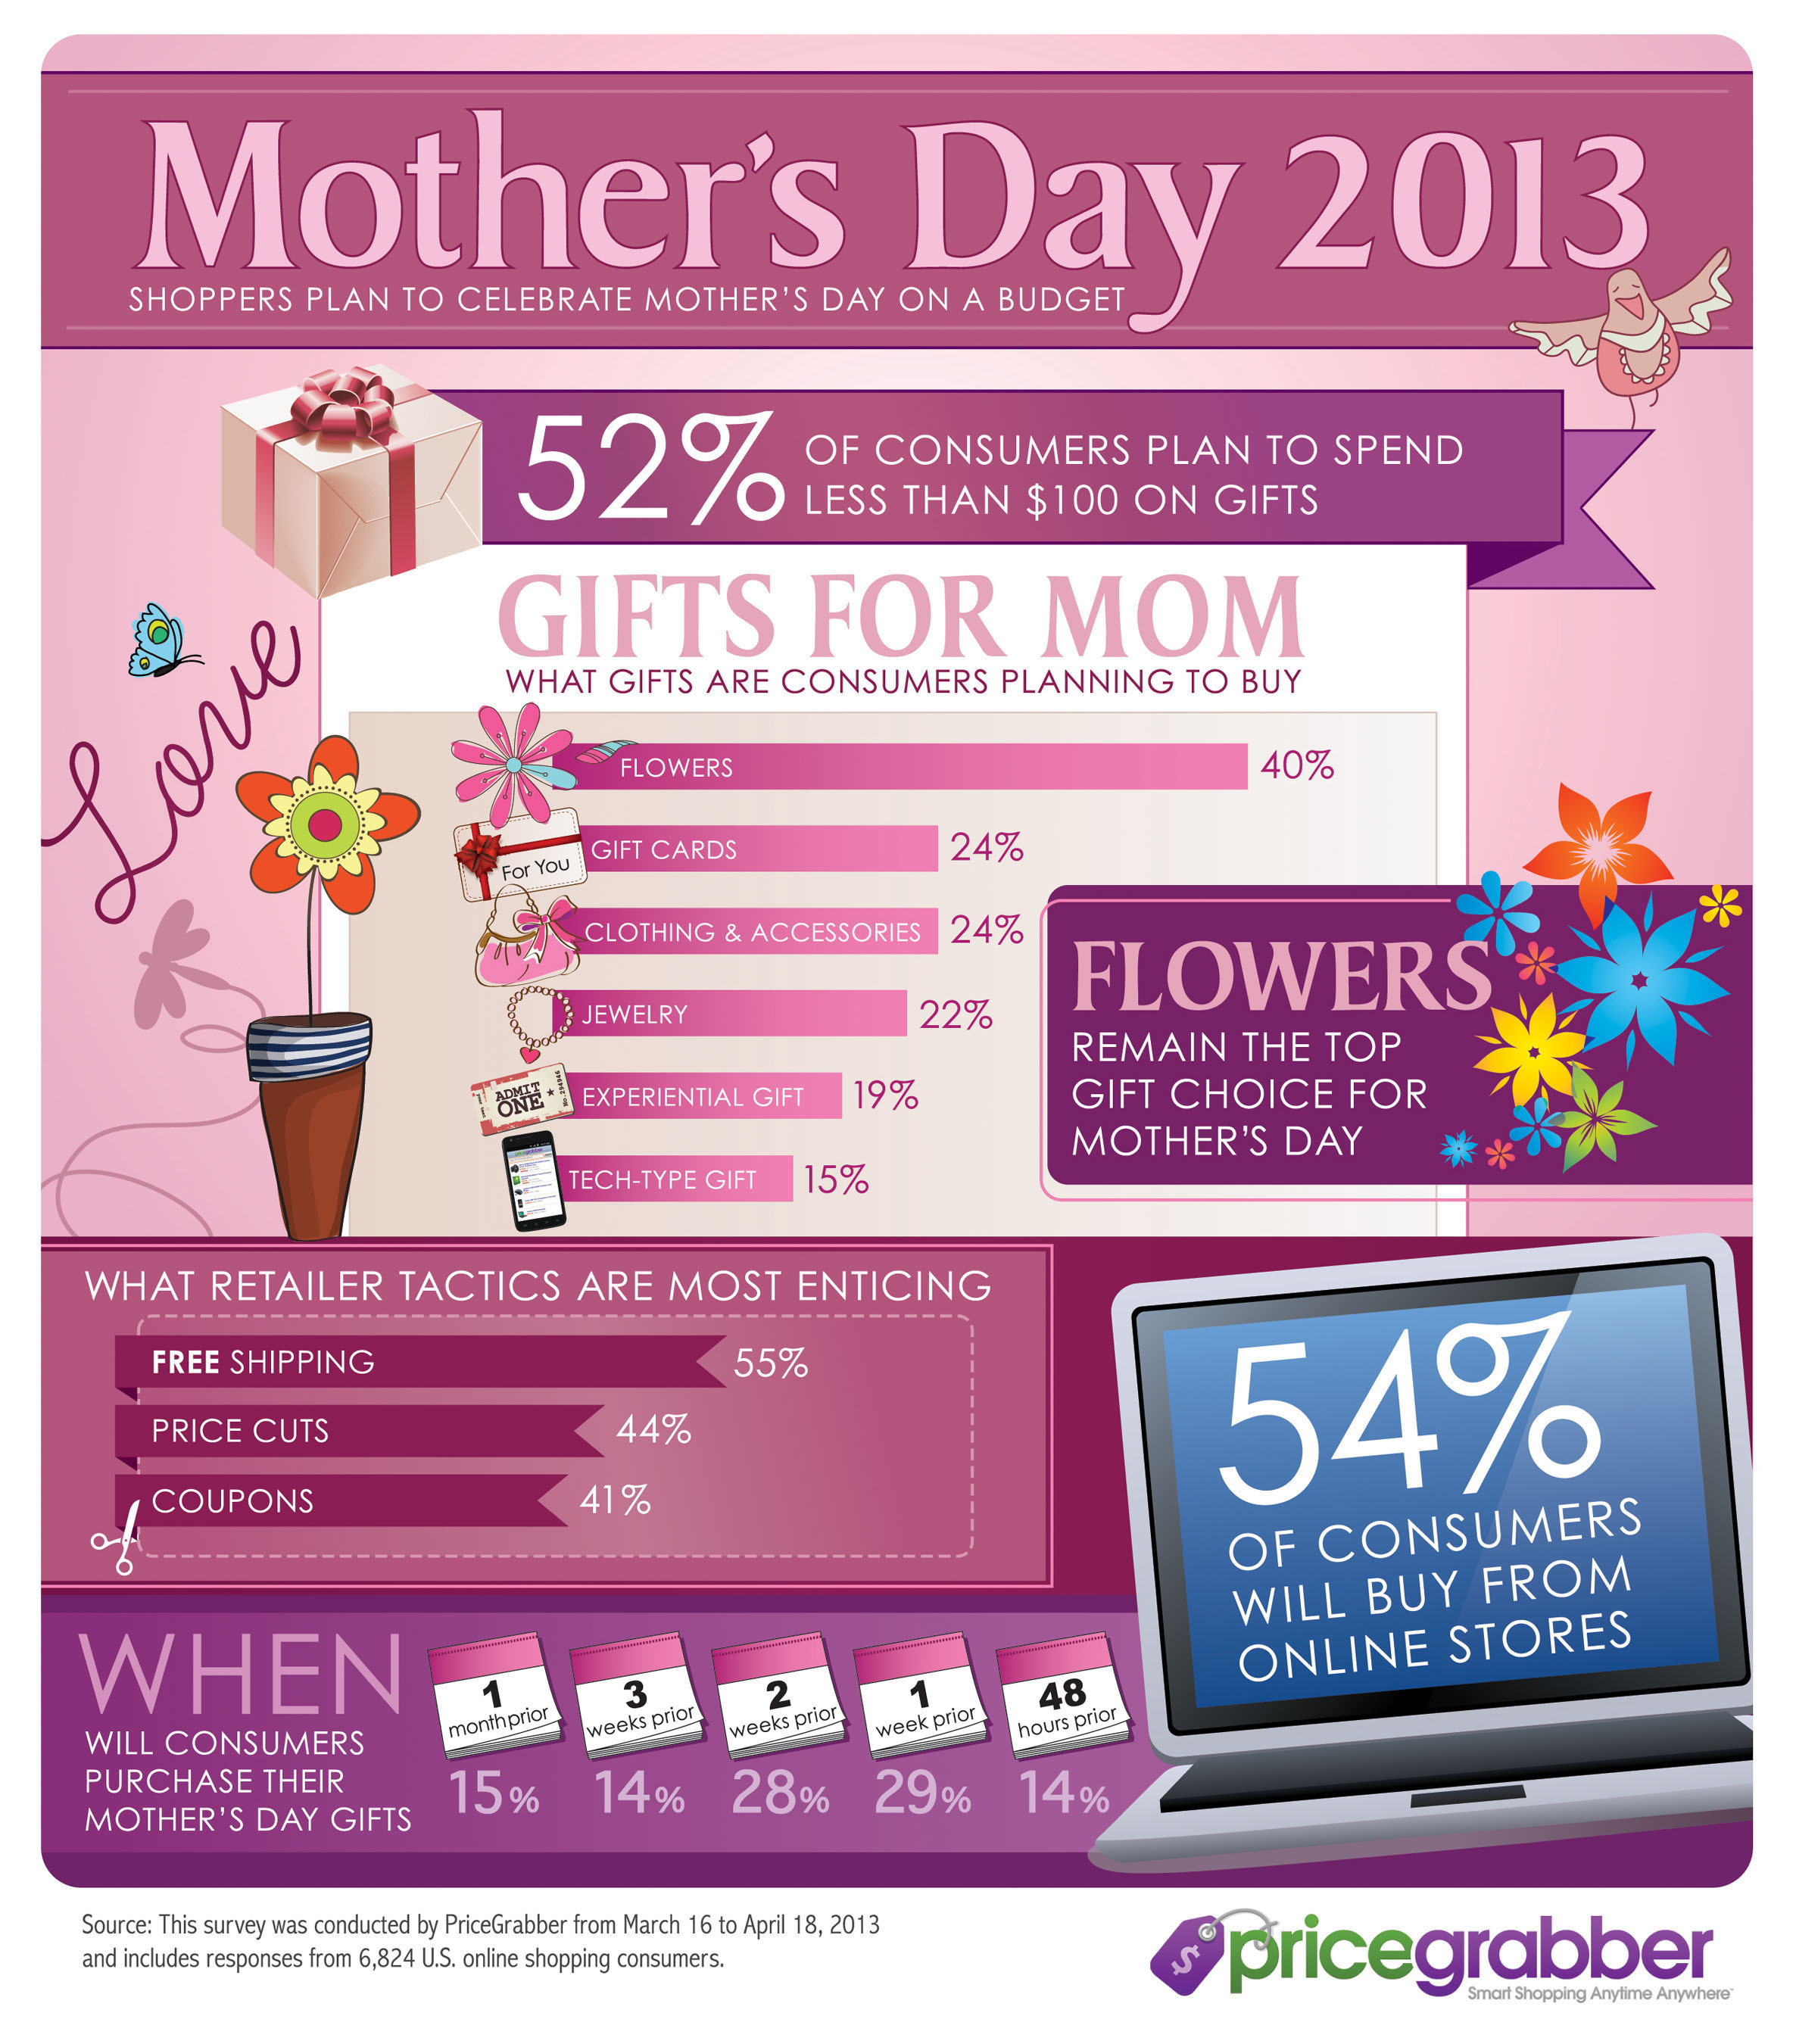 Shoppers Plan to Celebrate Mother's Day on a Budget, According to a PriceGrabber(R) Survey.  ...